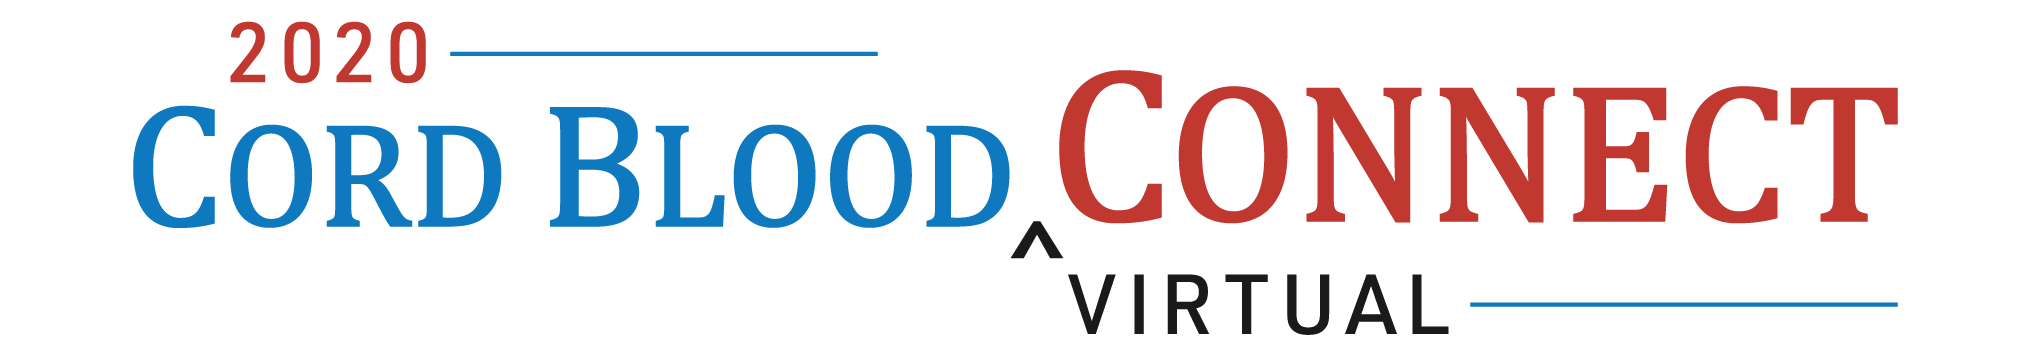 Cord Blood Connect